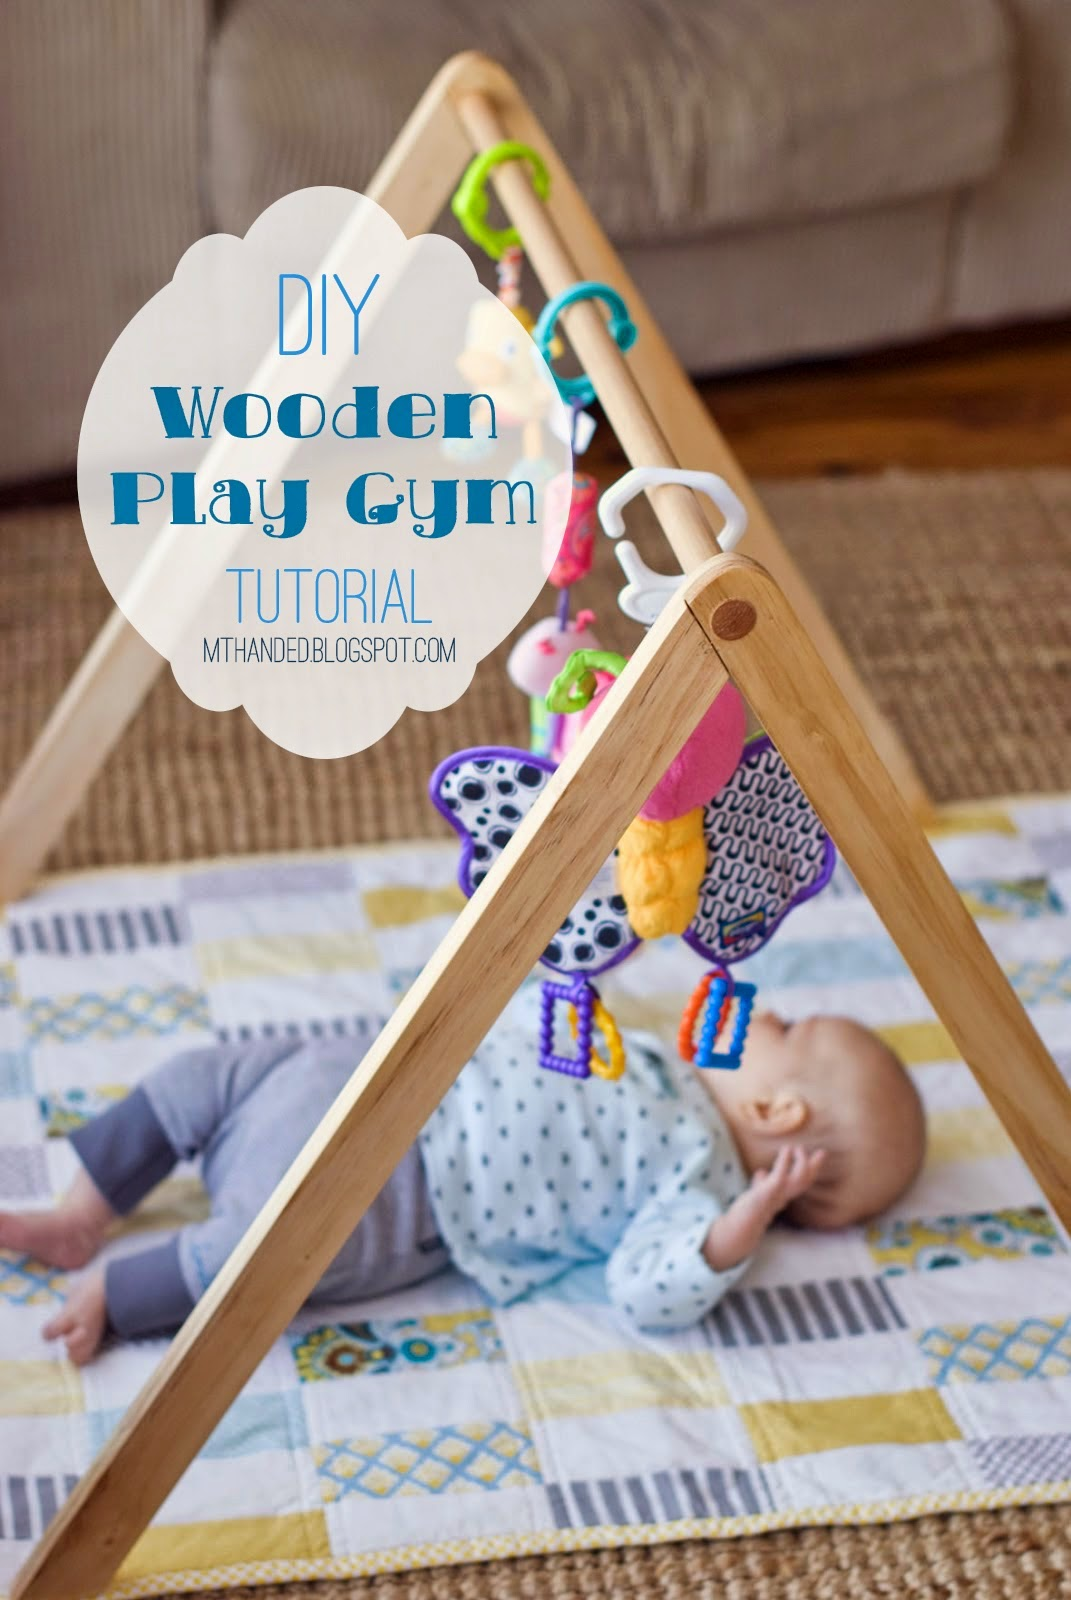 Helping Kids Grow Up How To Make Your Own Wooden Play Gym